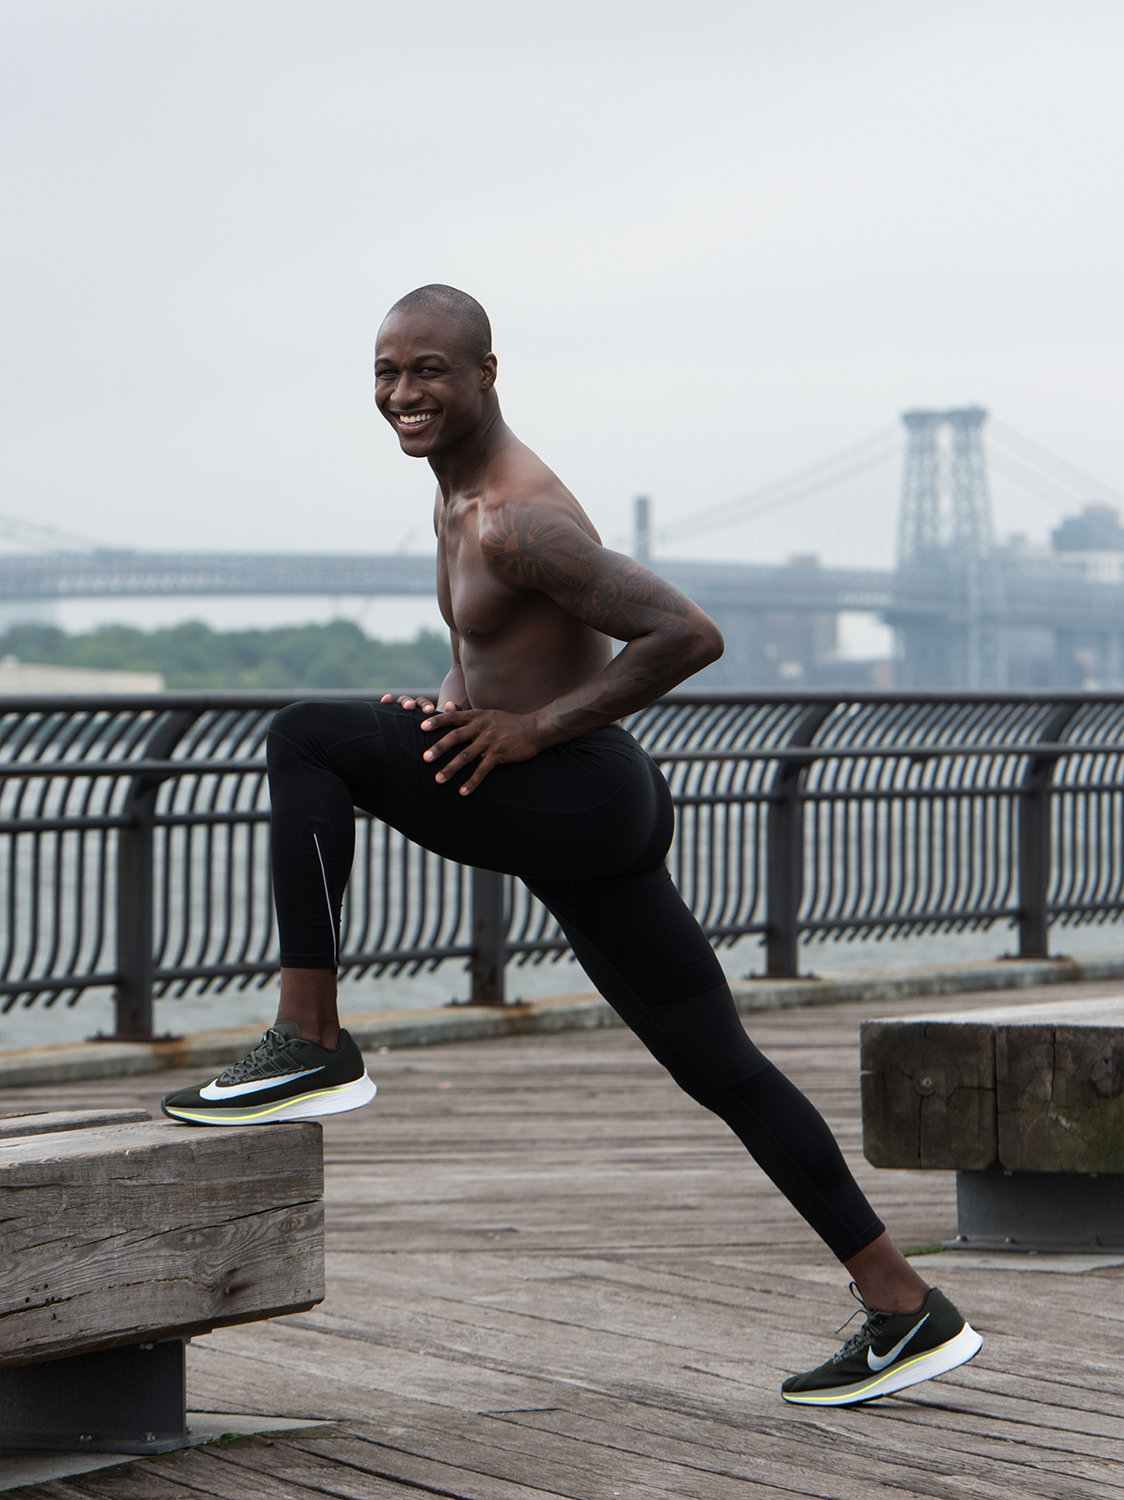 man lunge running fitness new york dumbo manhattan bridge